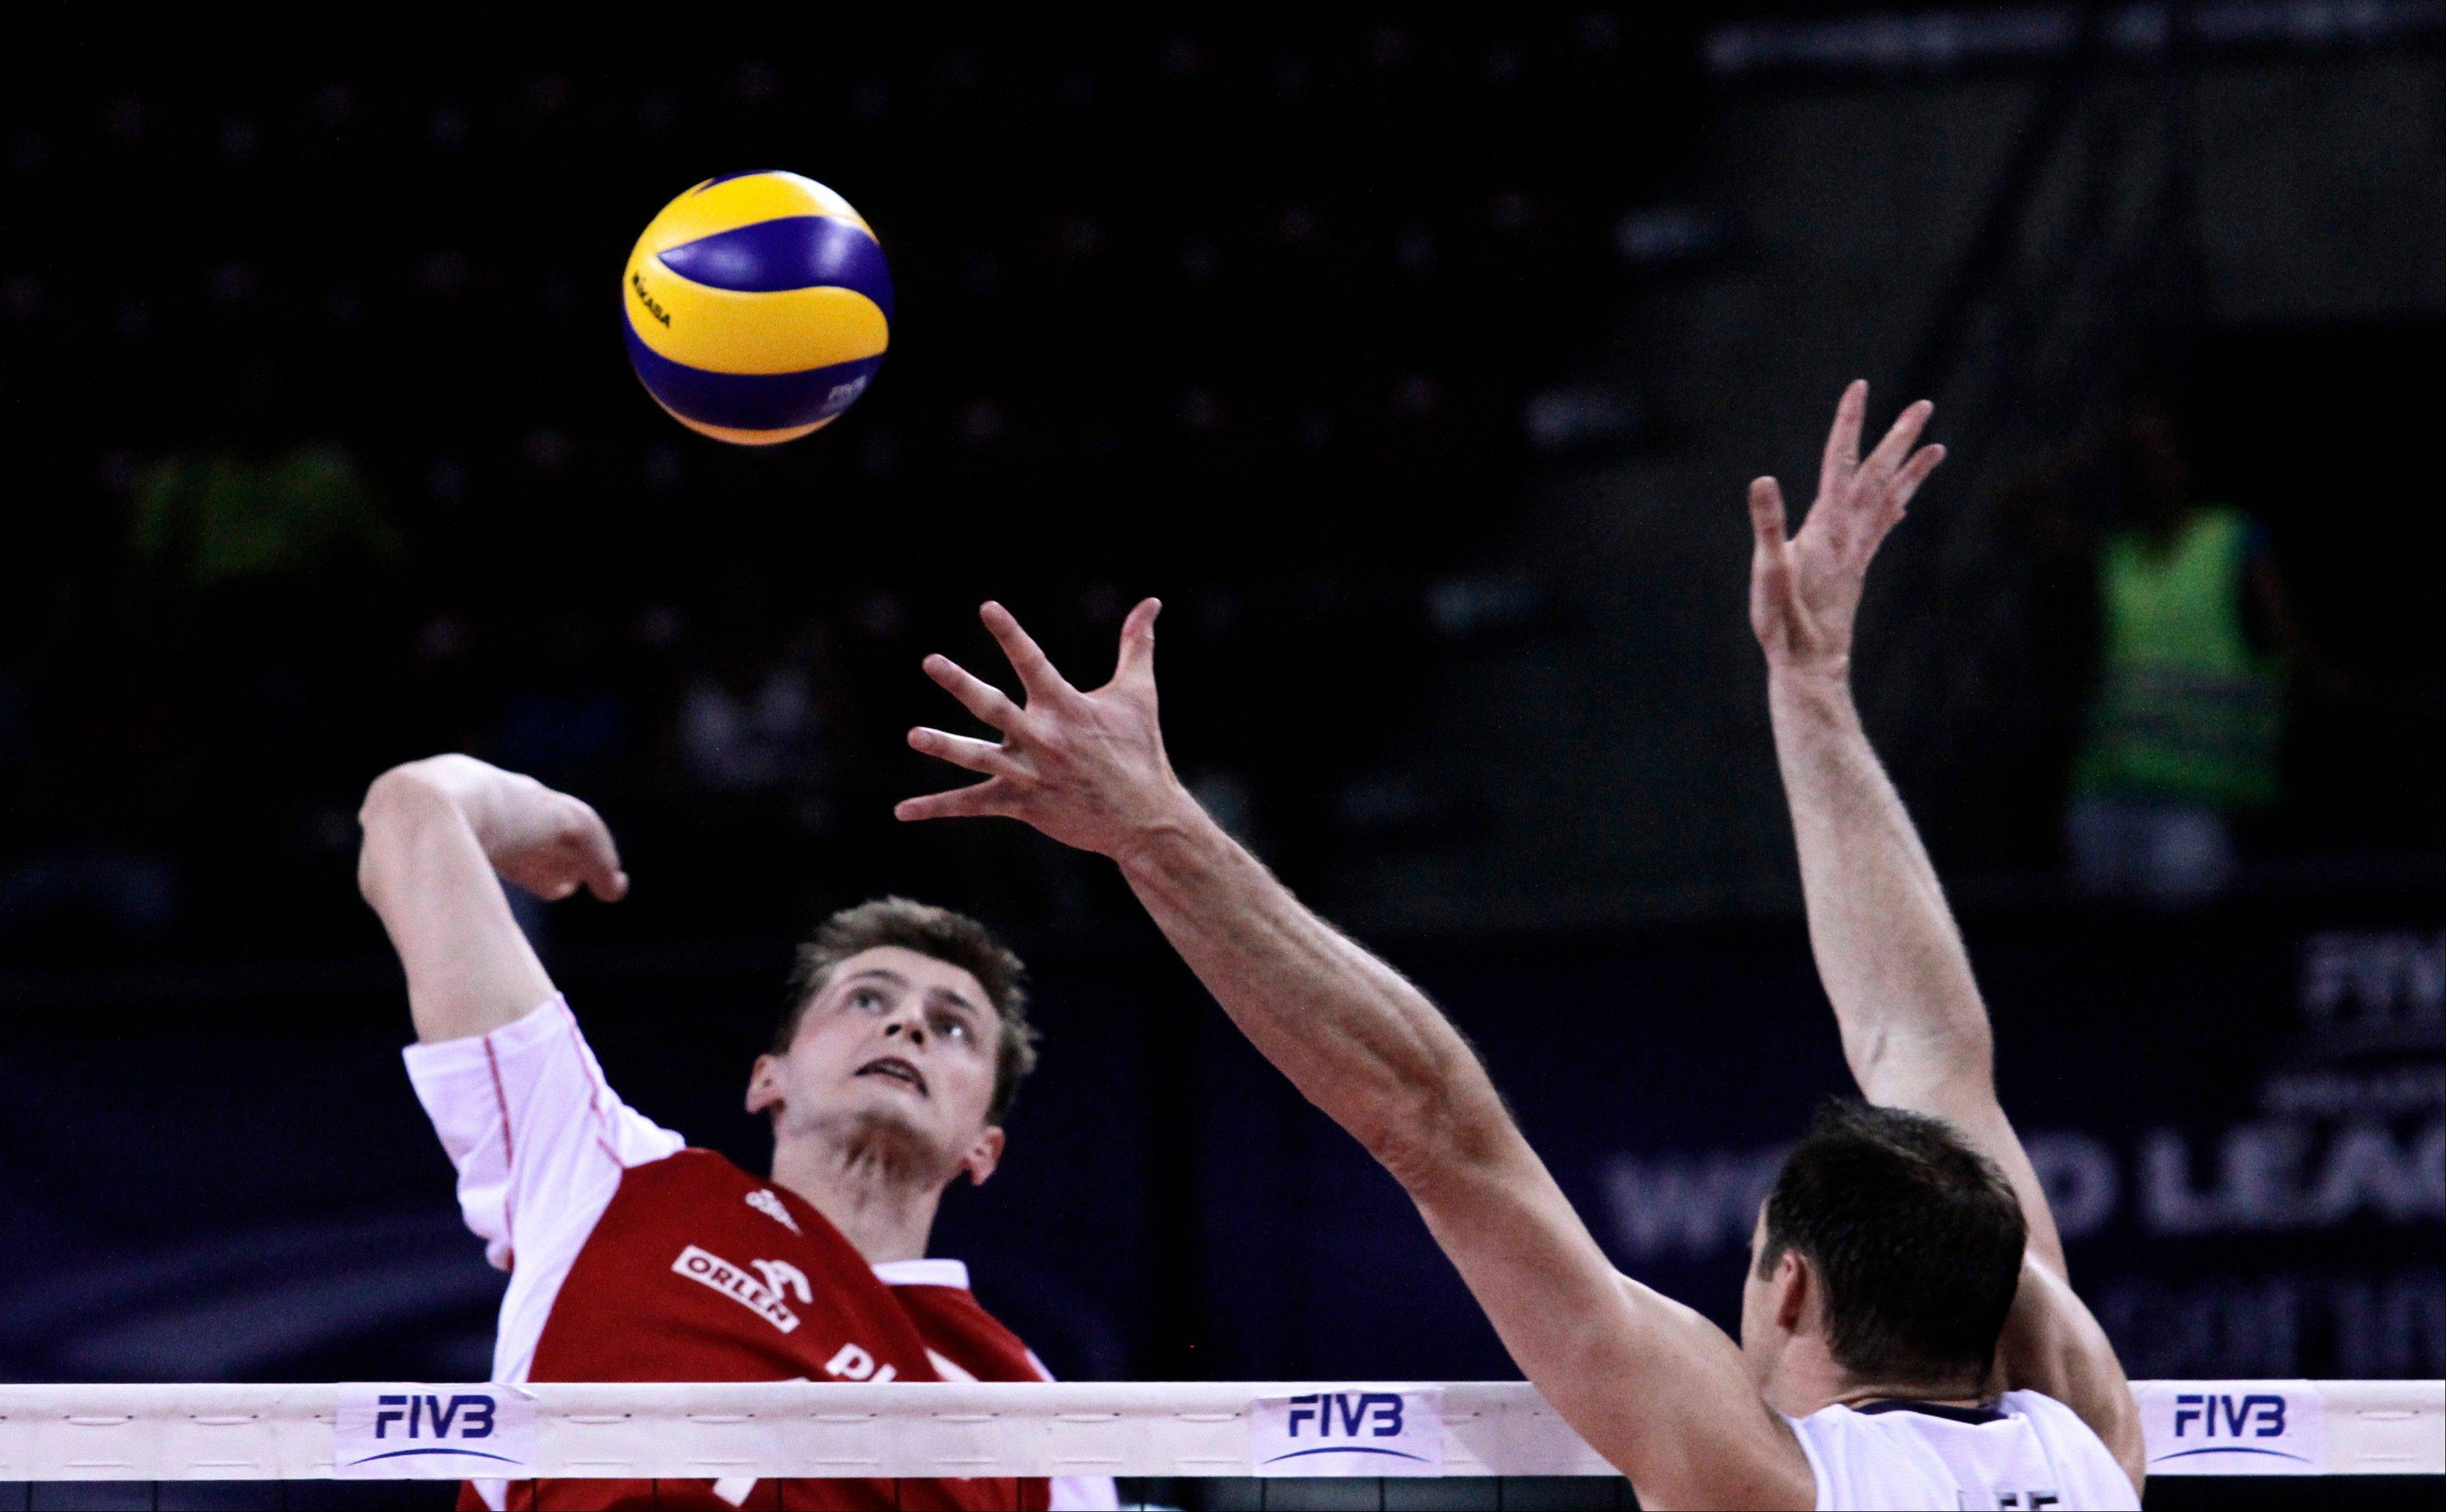 Poland's Piotr Nowakowski spikes the ball against David Lee of the U.S. during the 2012 FIVB World League Volleyball final match Sunday in Sofia, Bulgaria.